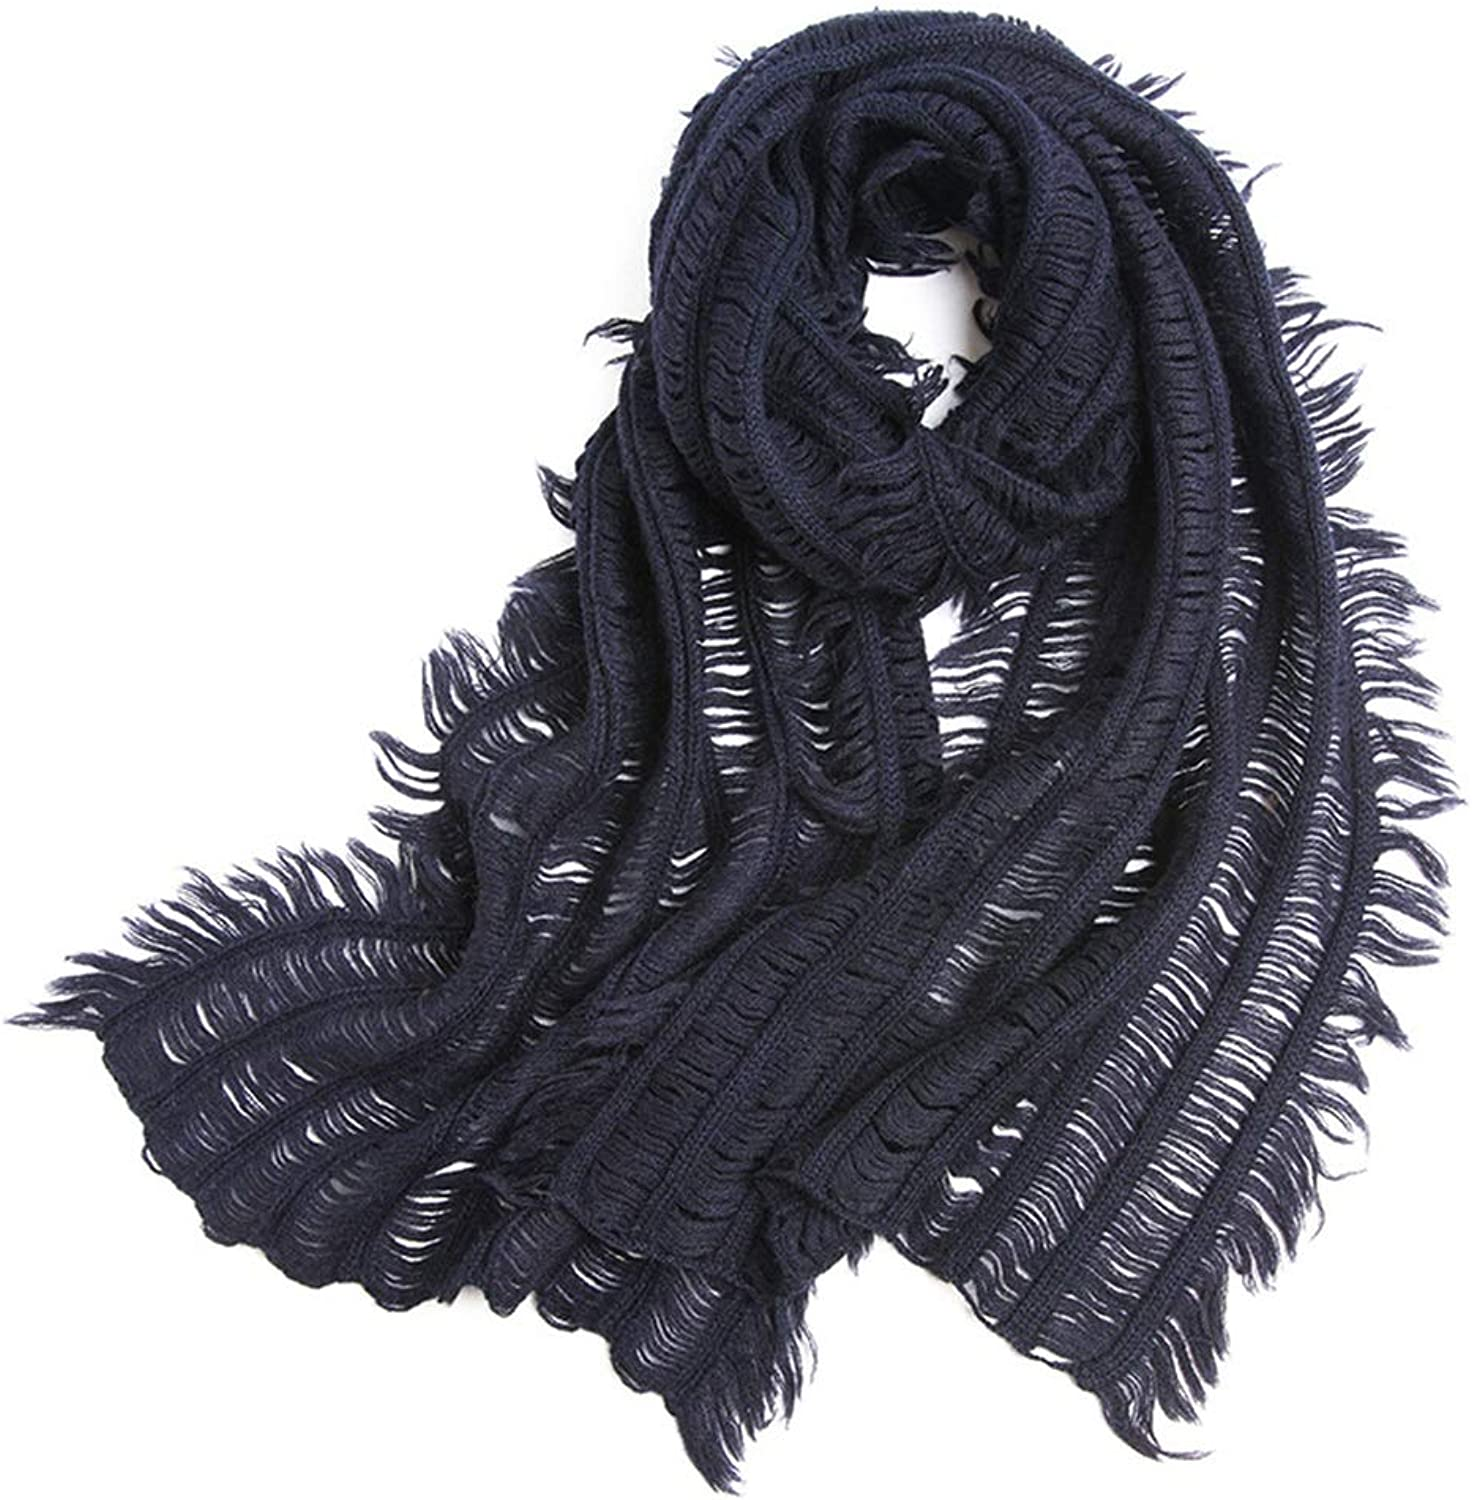 Alpaca Scarf, Ladies Warm Knitted Shawl, Monochrome Jacquard Scarves, 200x40cm (color   bluee)